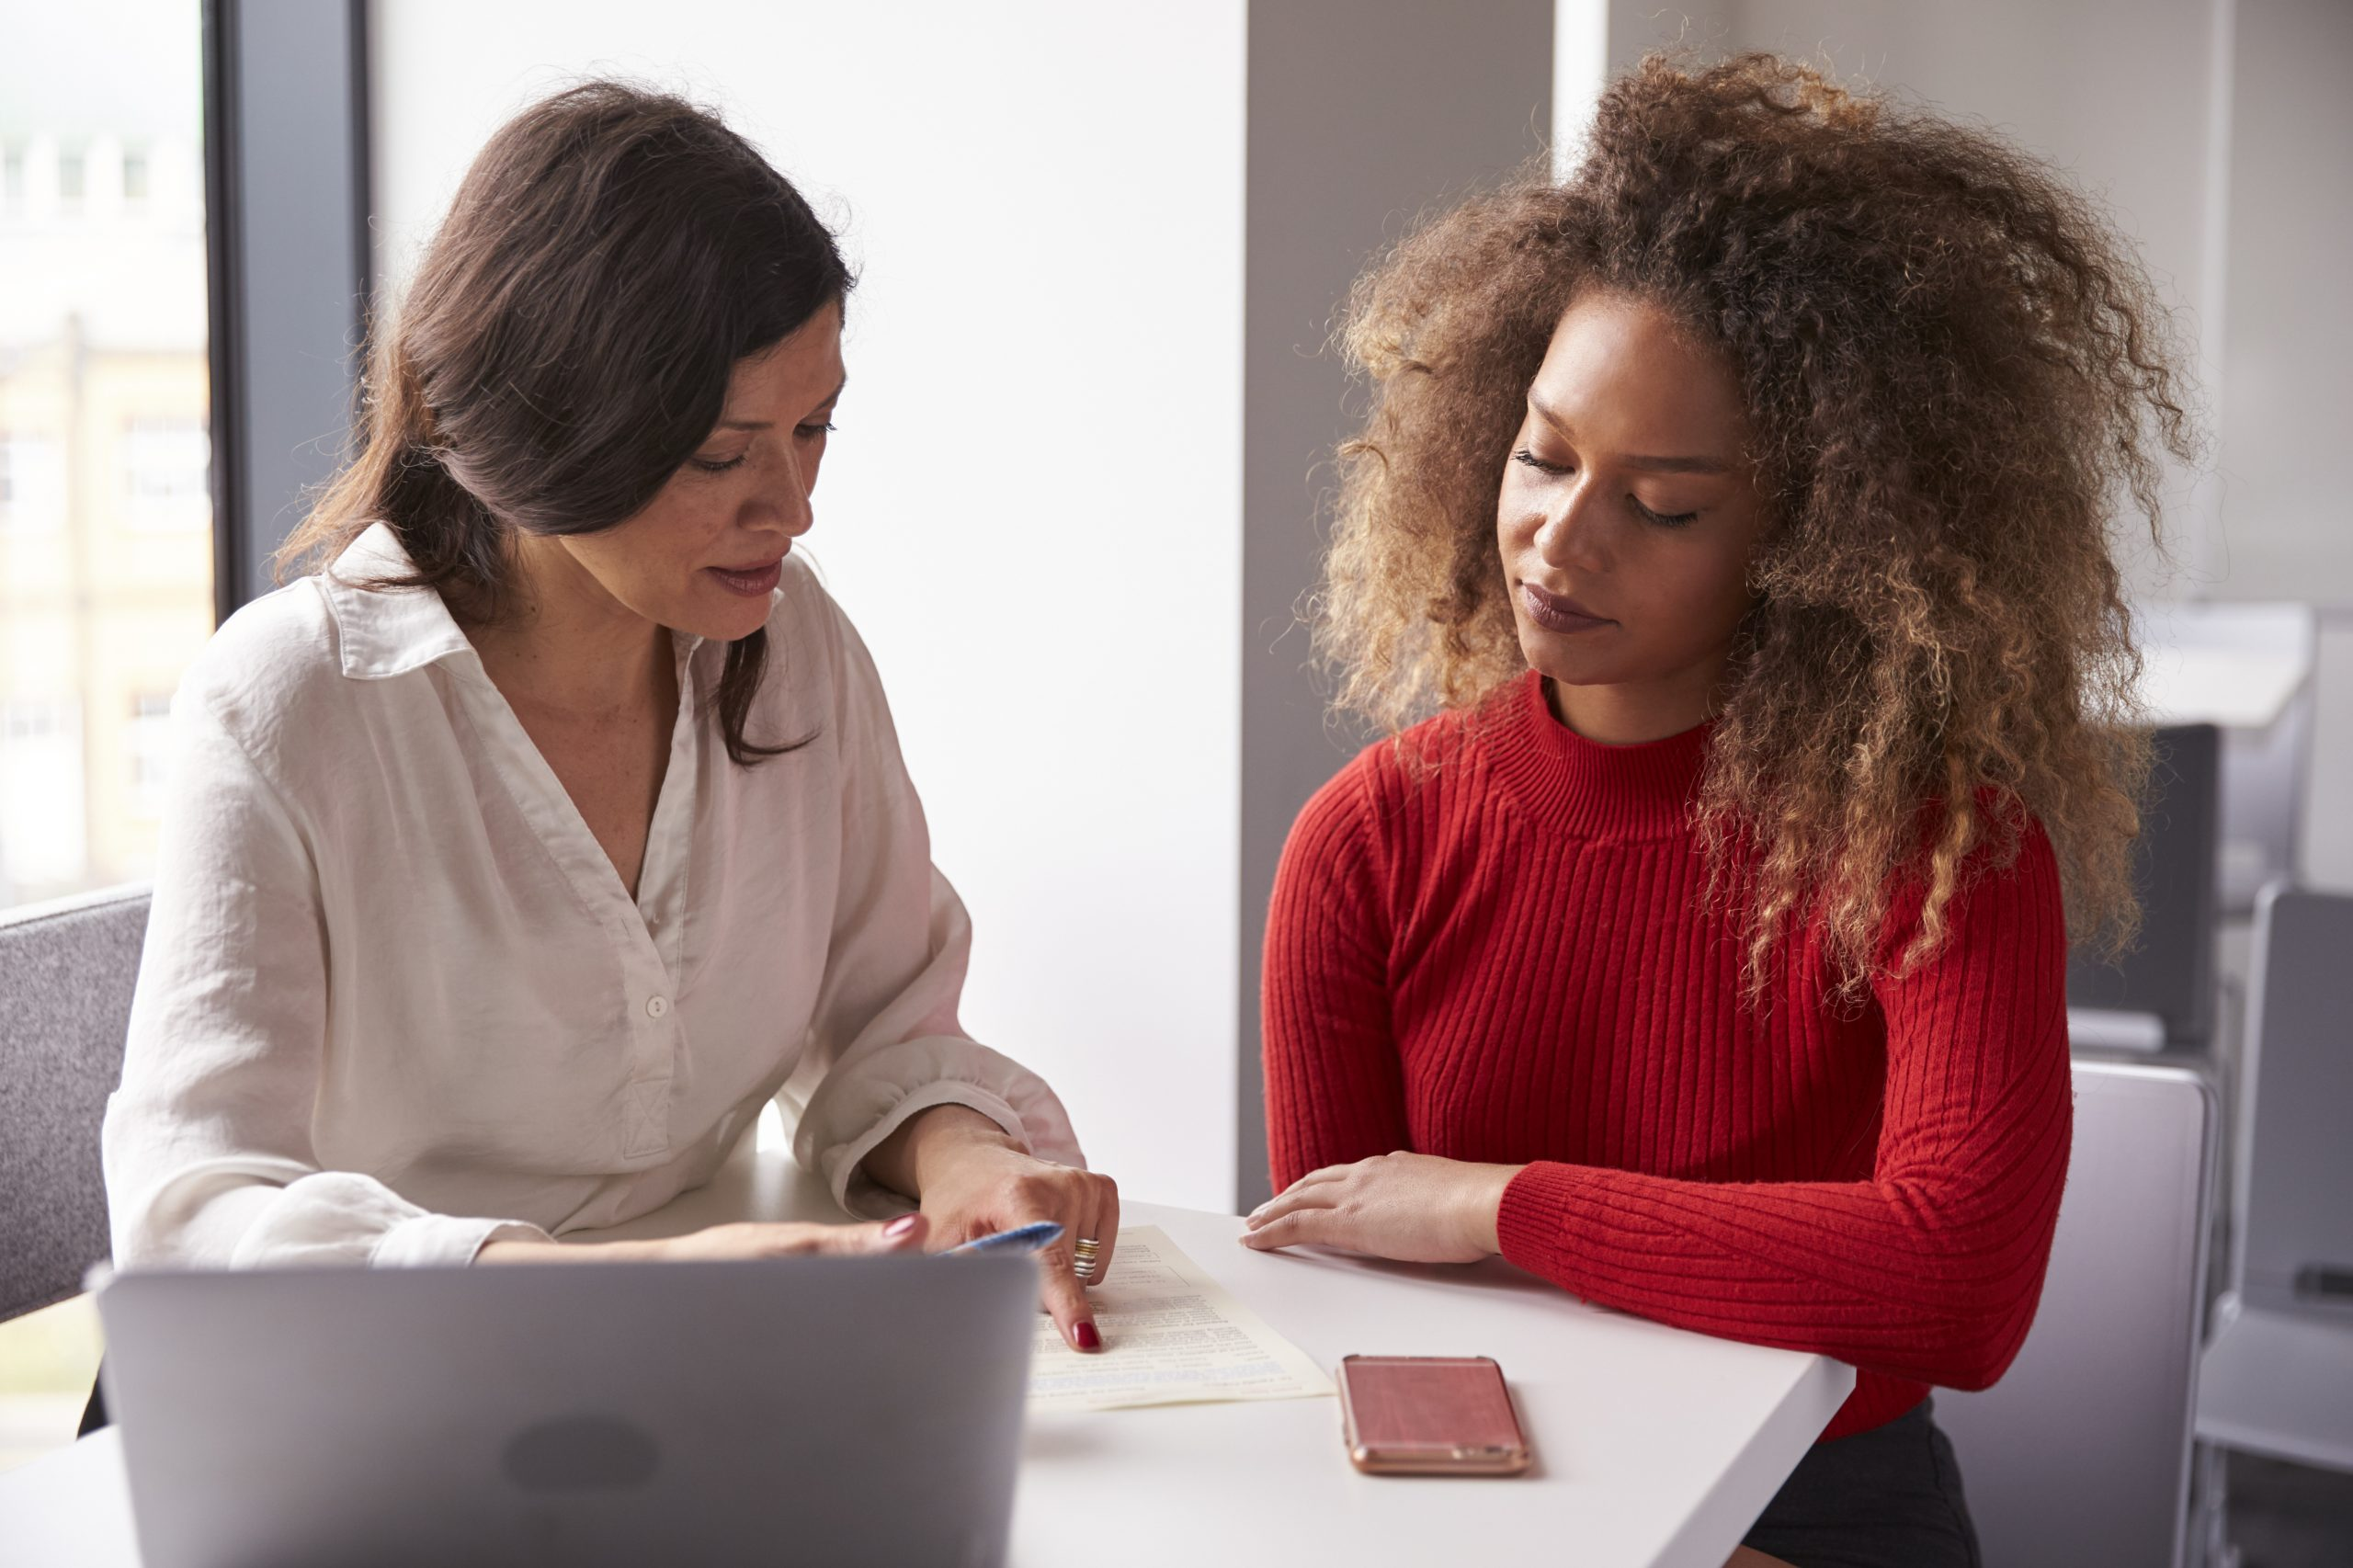 Female University Student Working One To One With Tutor